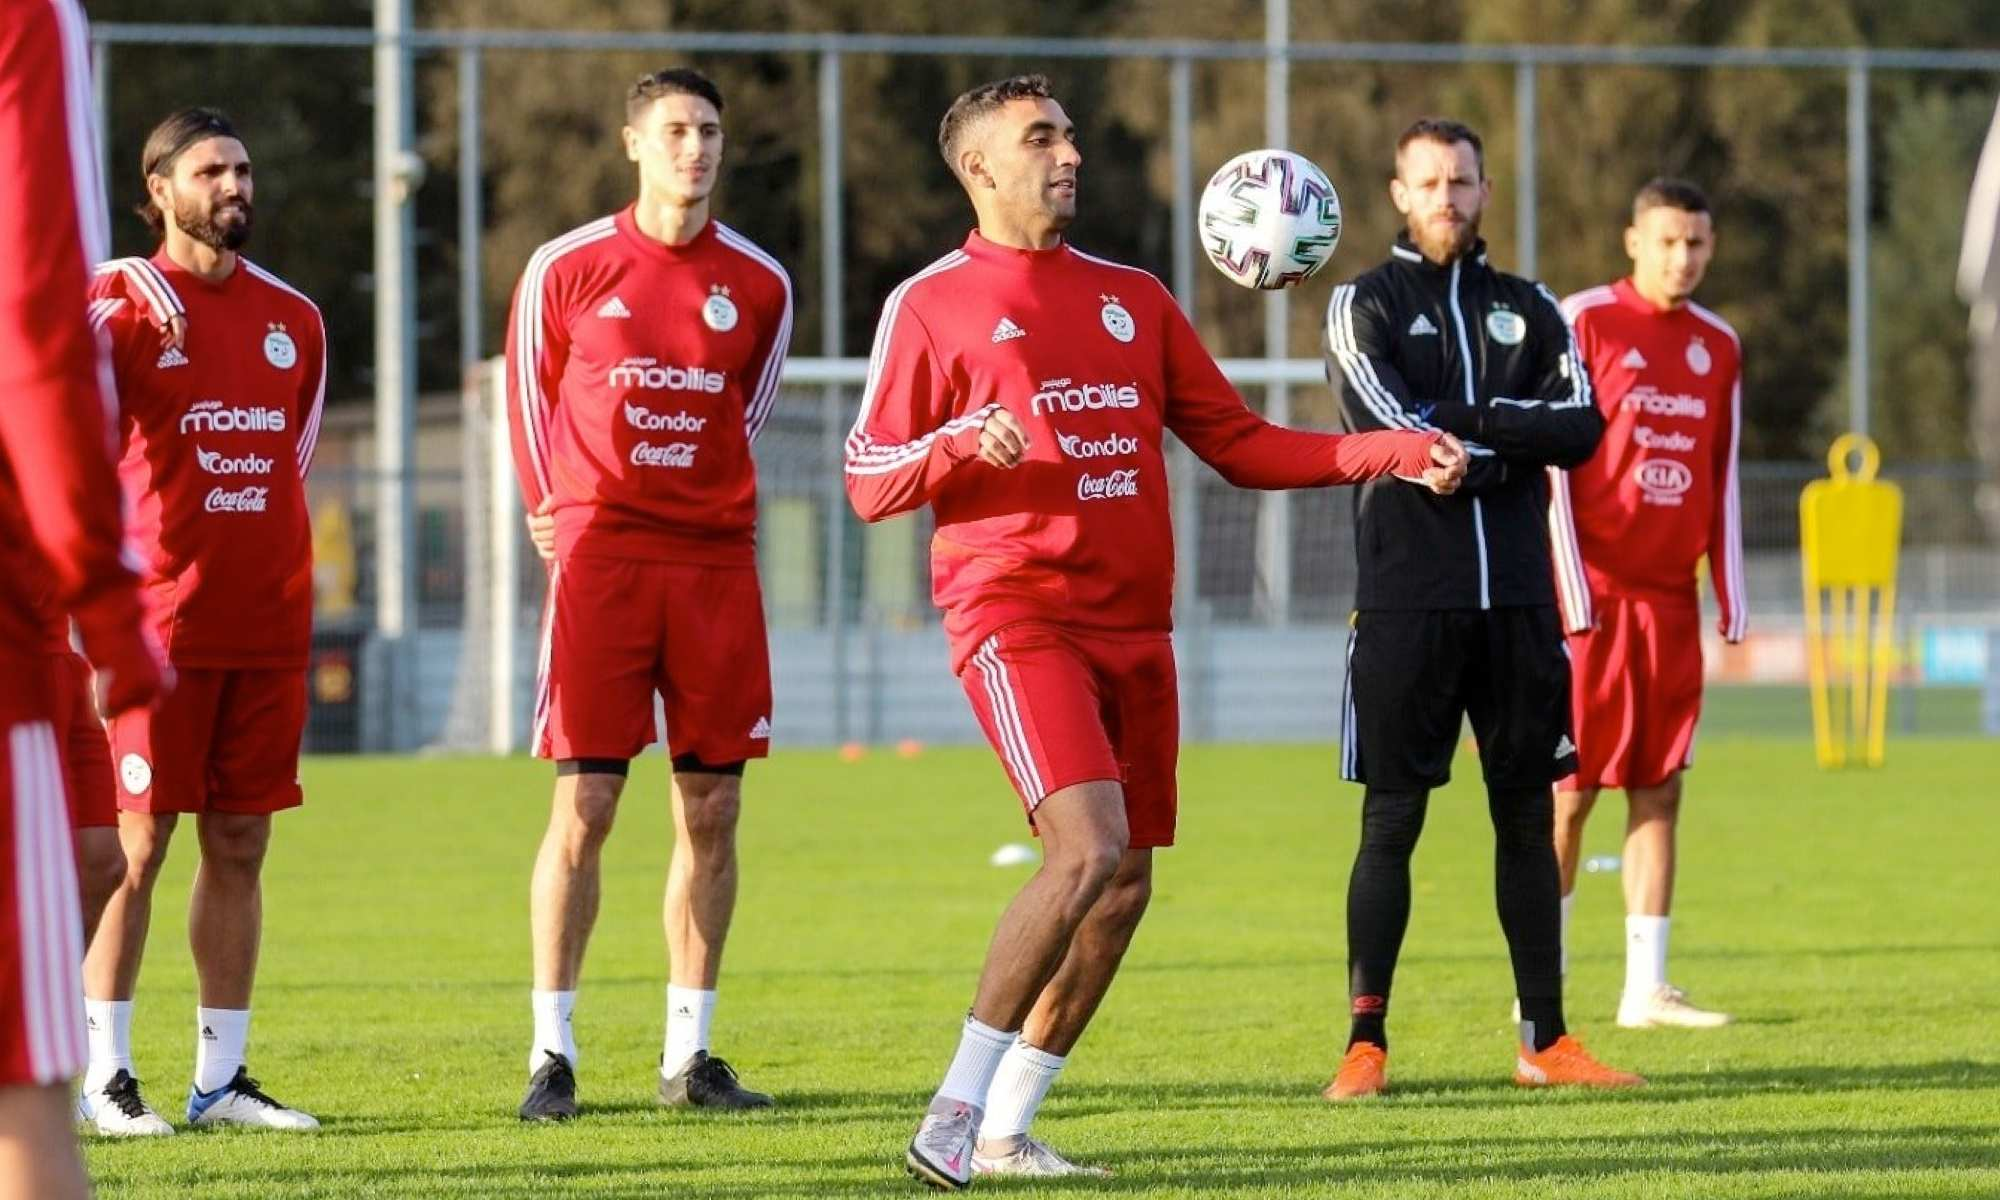 fares tahrat oukidja spano groupe entrainement stage rouge pays bas octobre